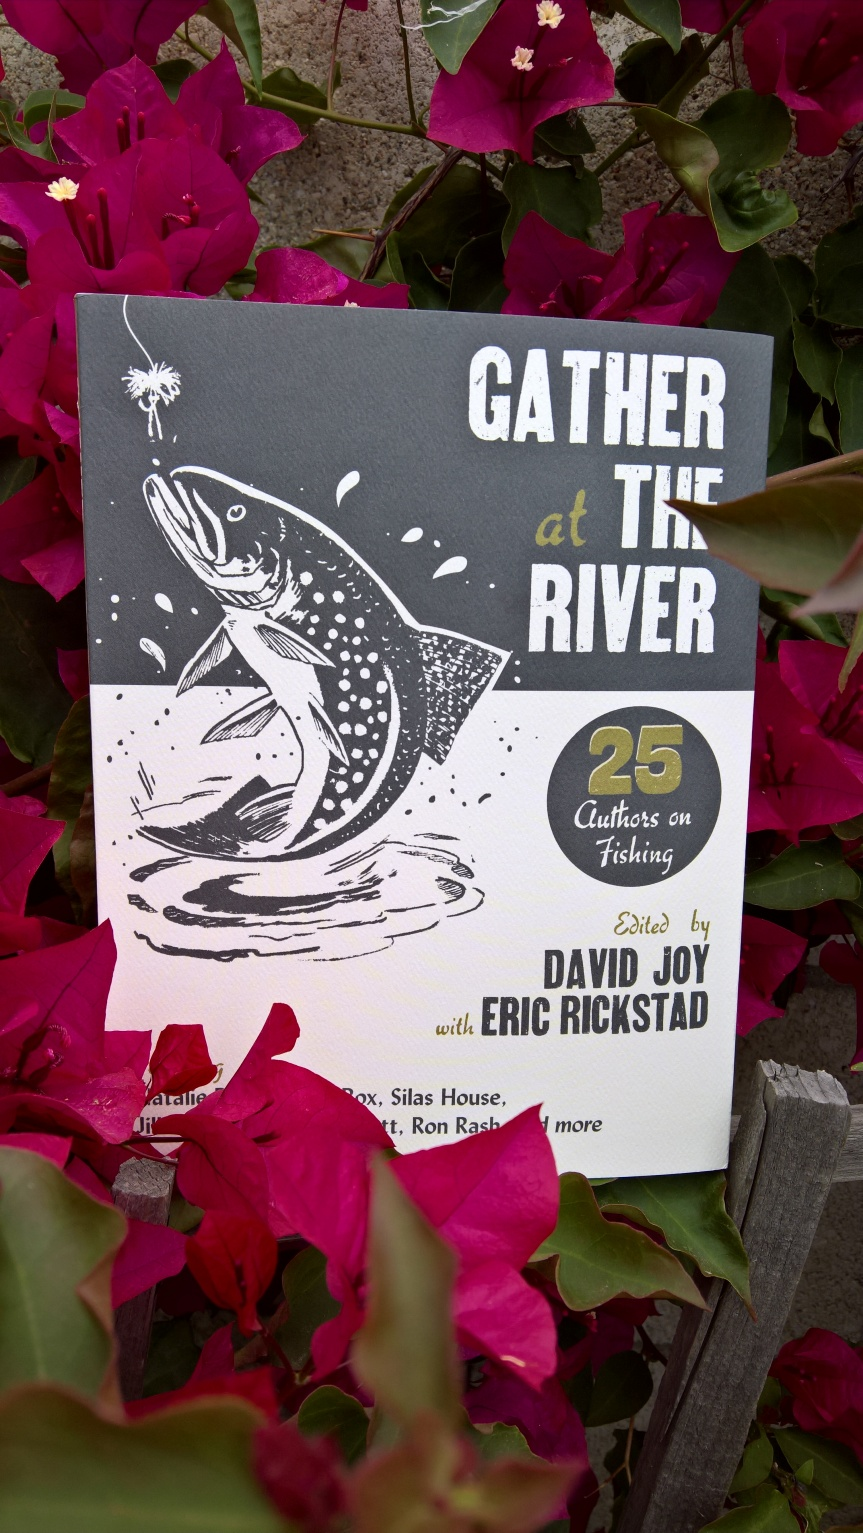 Gather at the River: 25 Authors on Fishing ( Edited by David Joy with ErickRickstad)